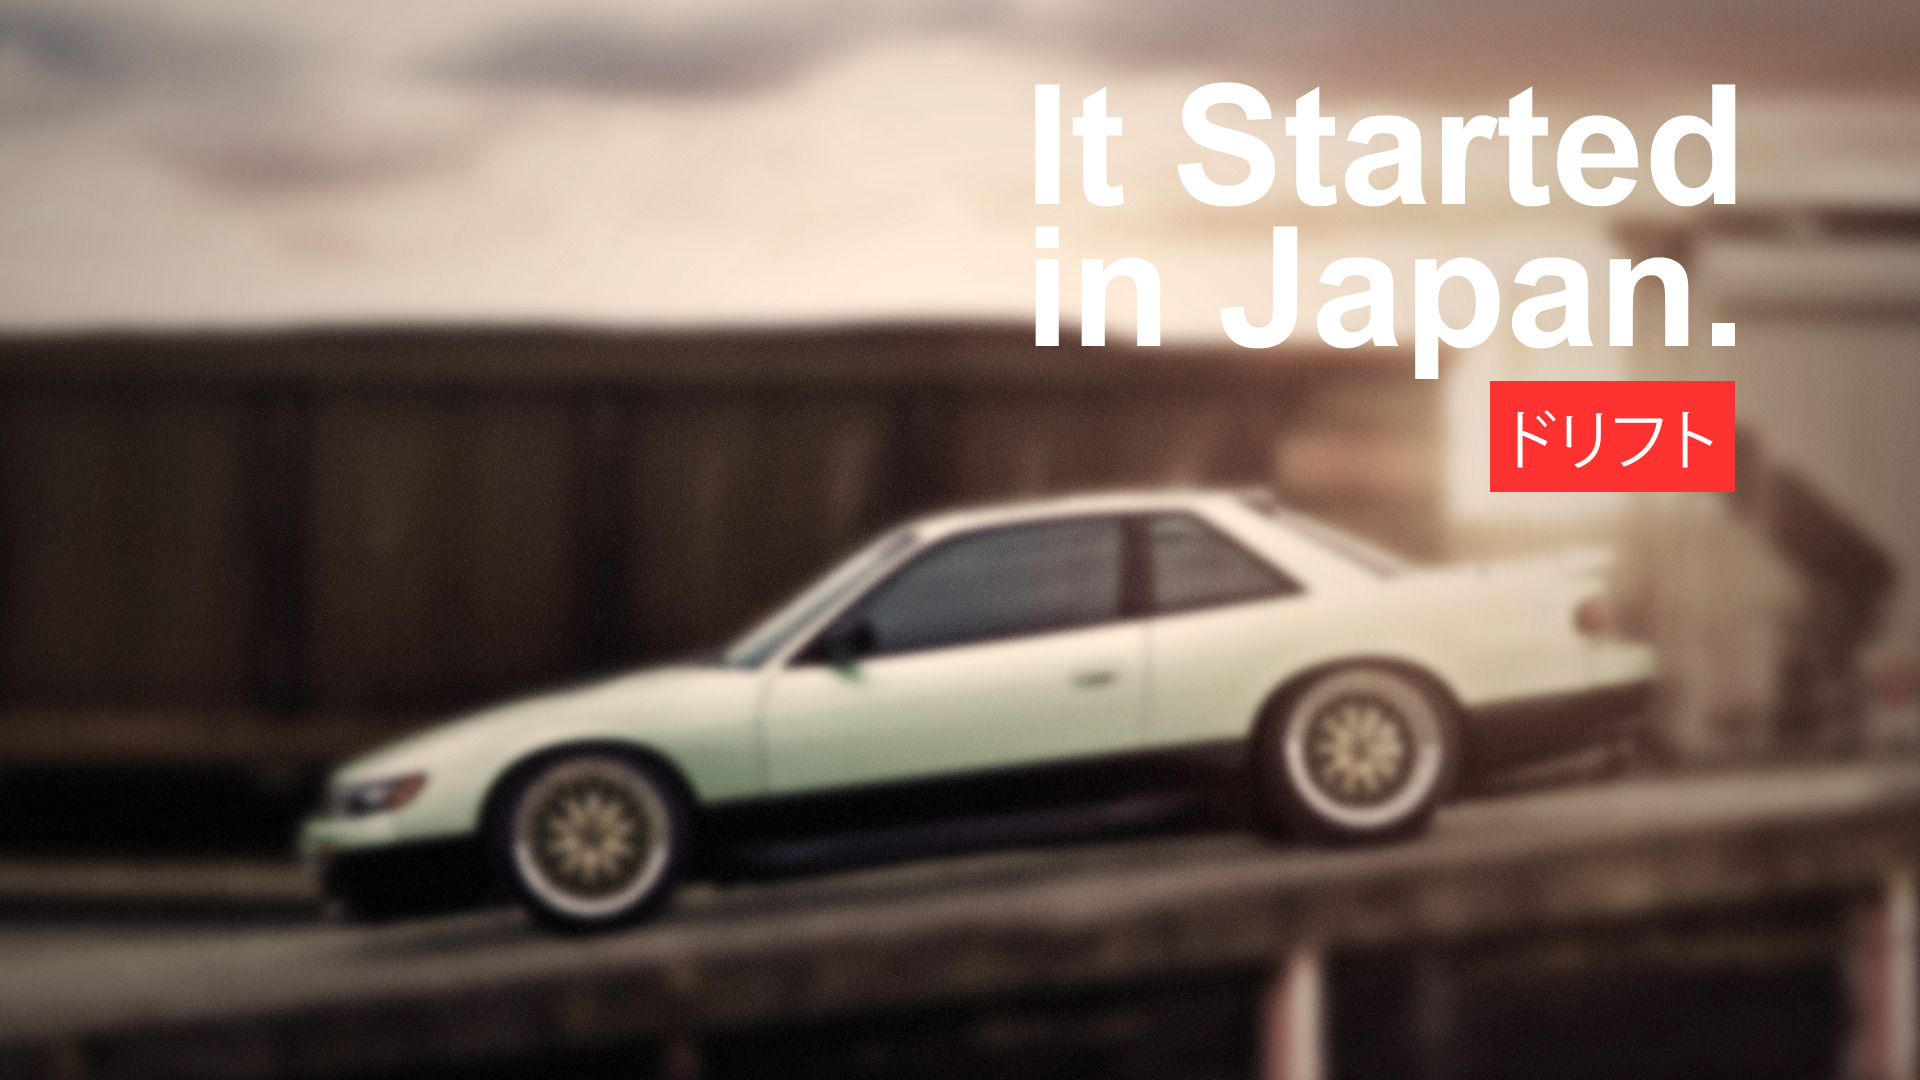 Super Car 5760x1080 Wallpaper Car Japan Drift Drifting Racing Vehicle Japanese